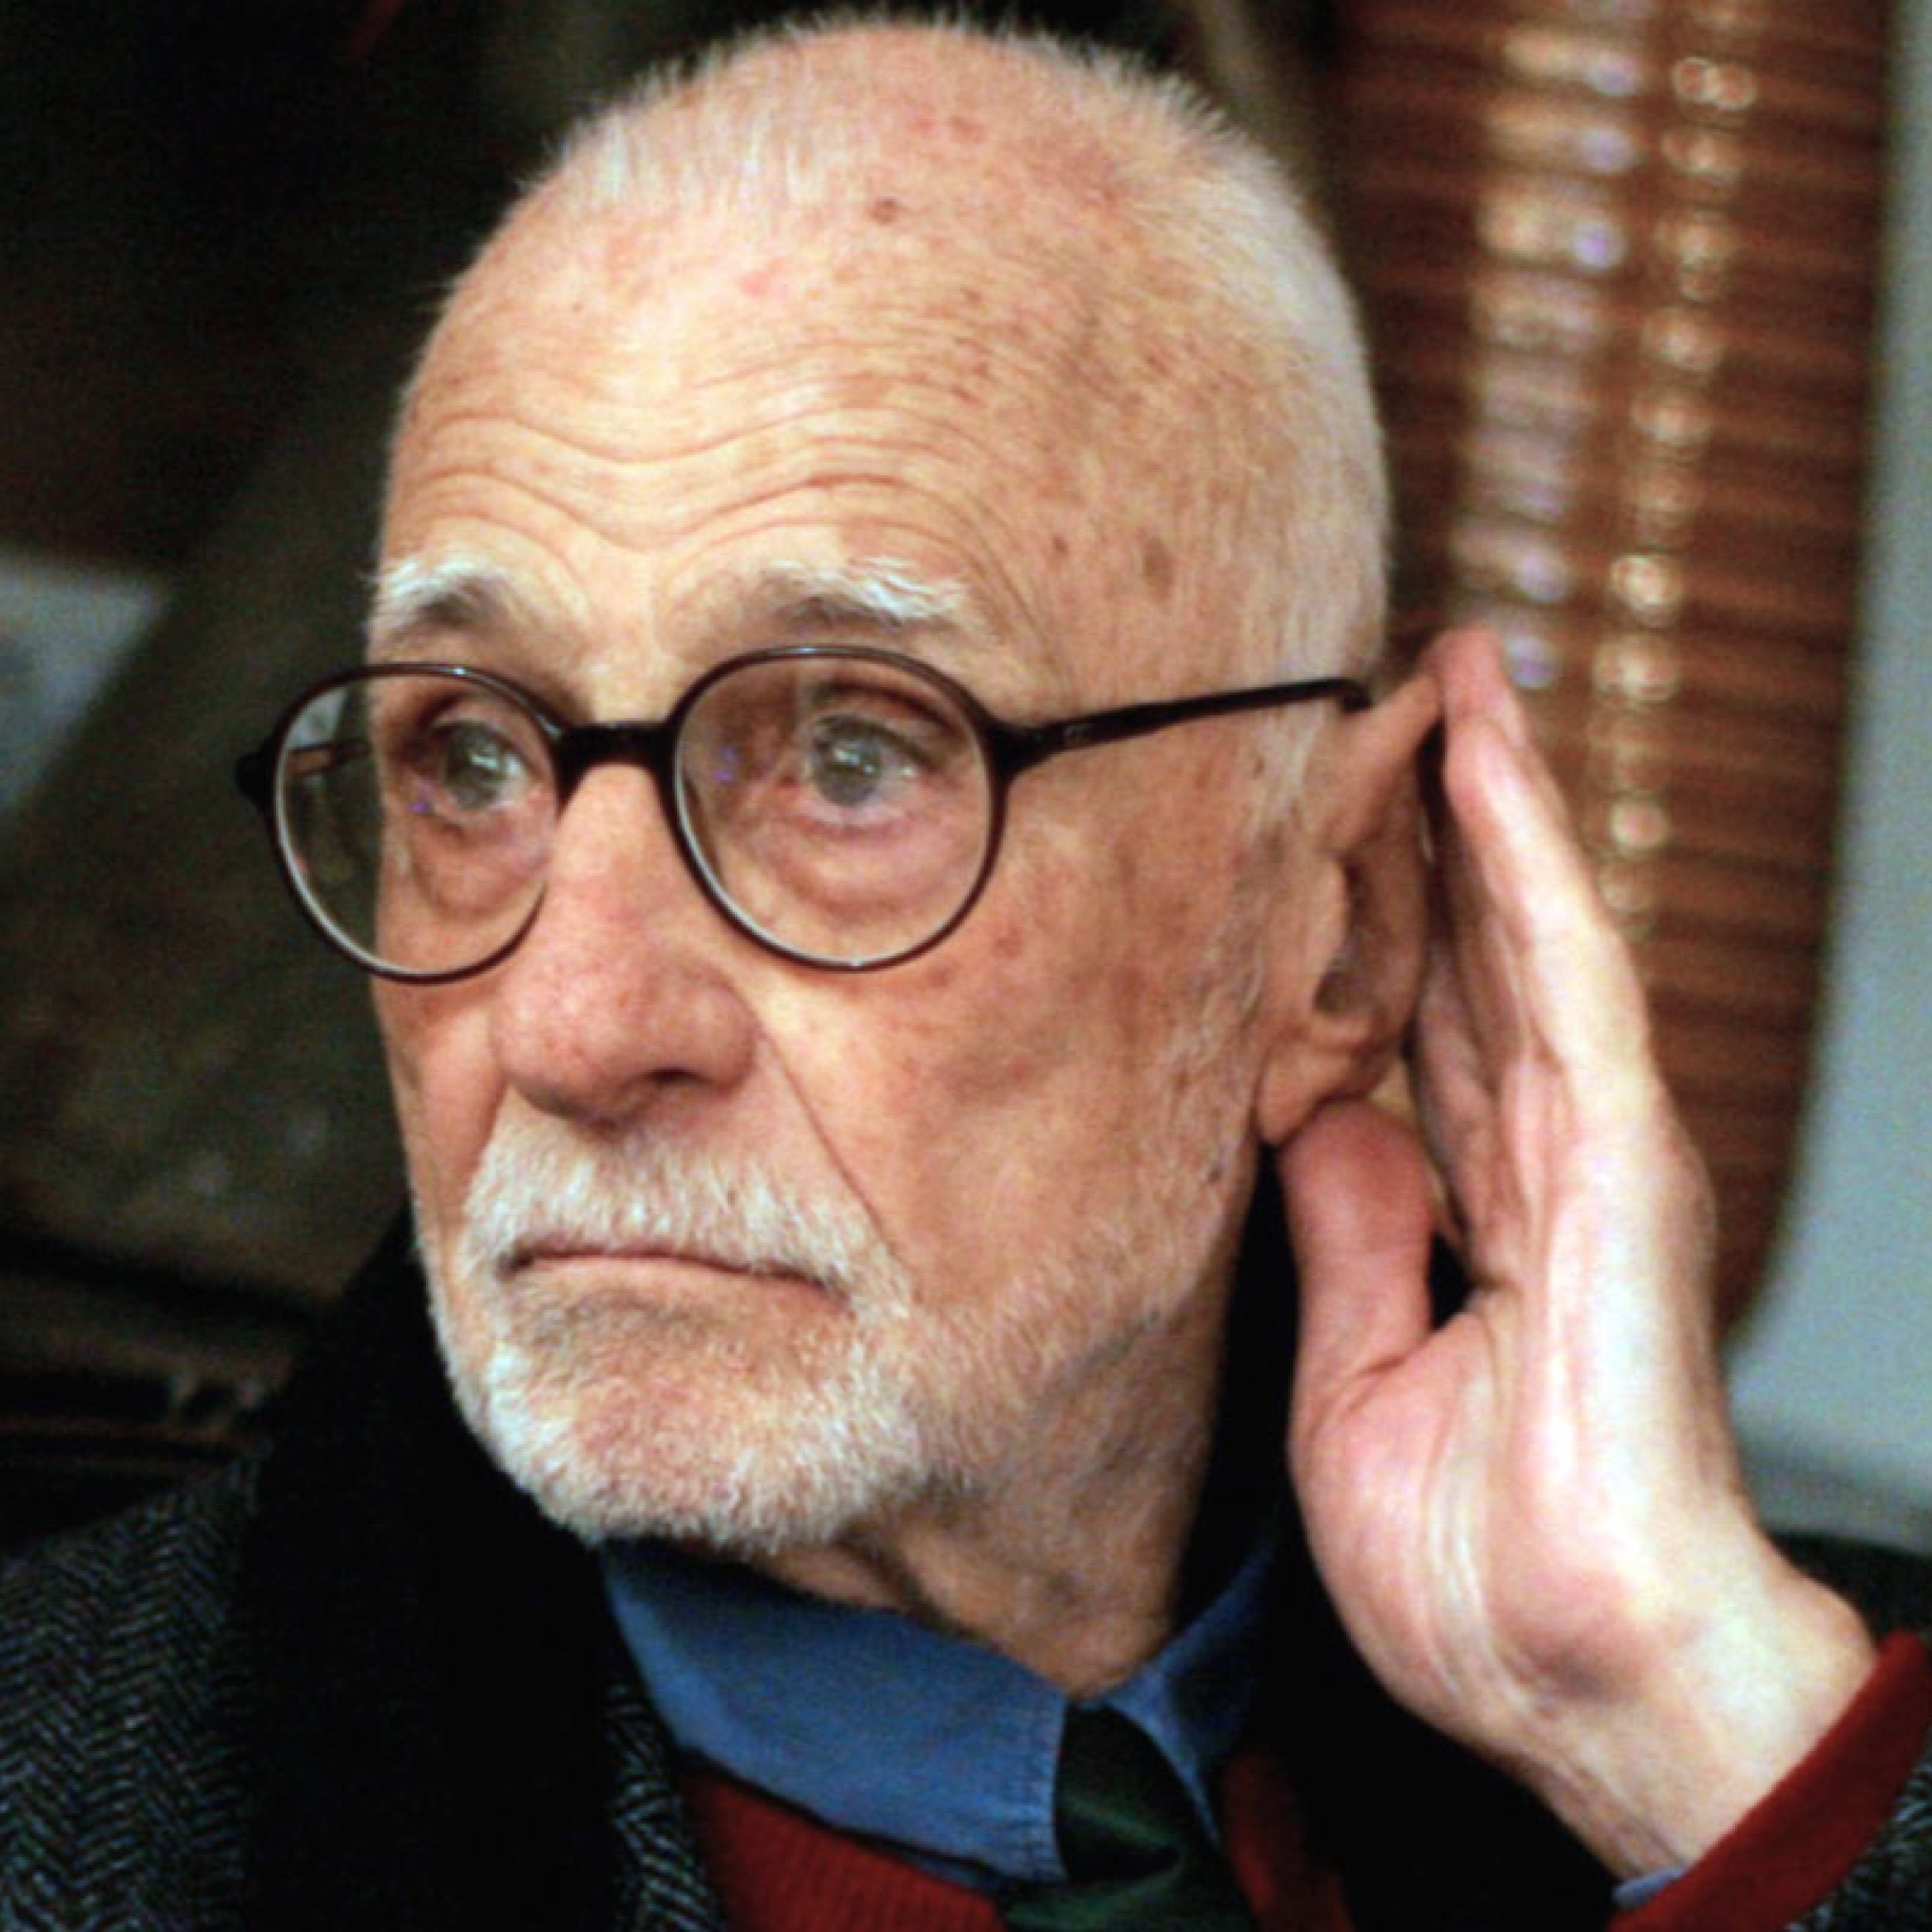 Podcast: Mario Monicelli